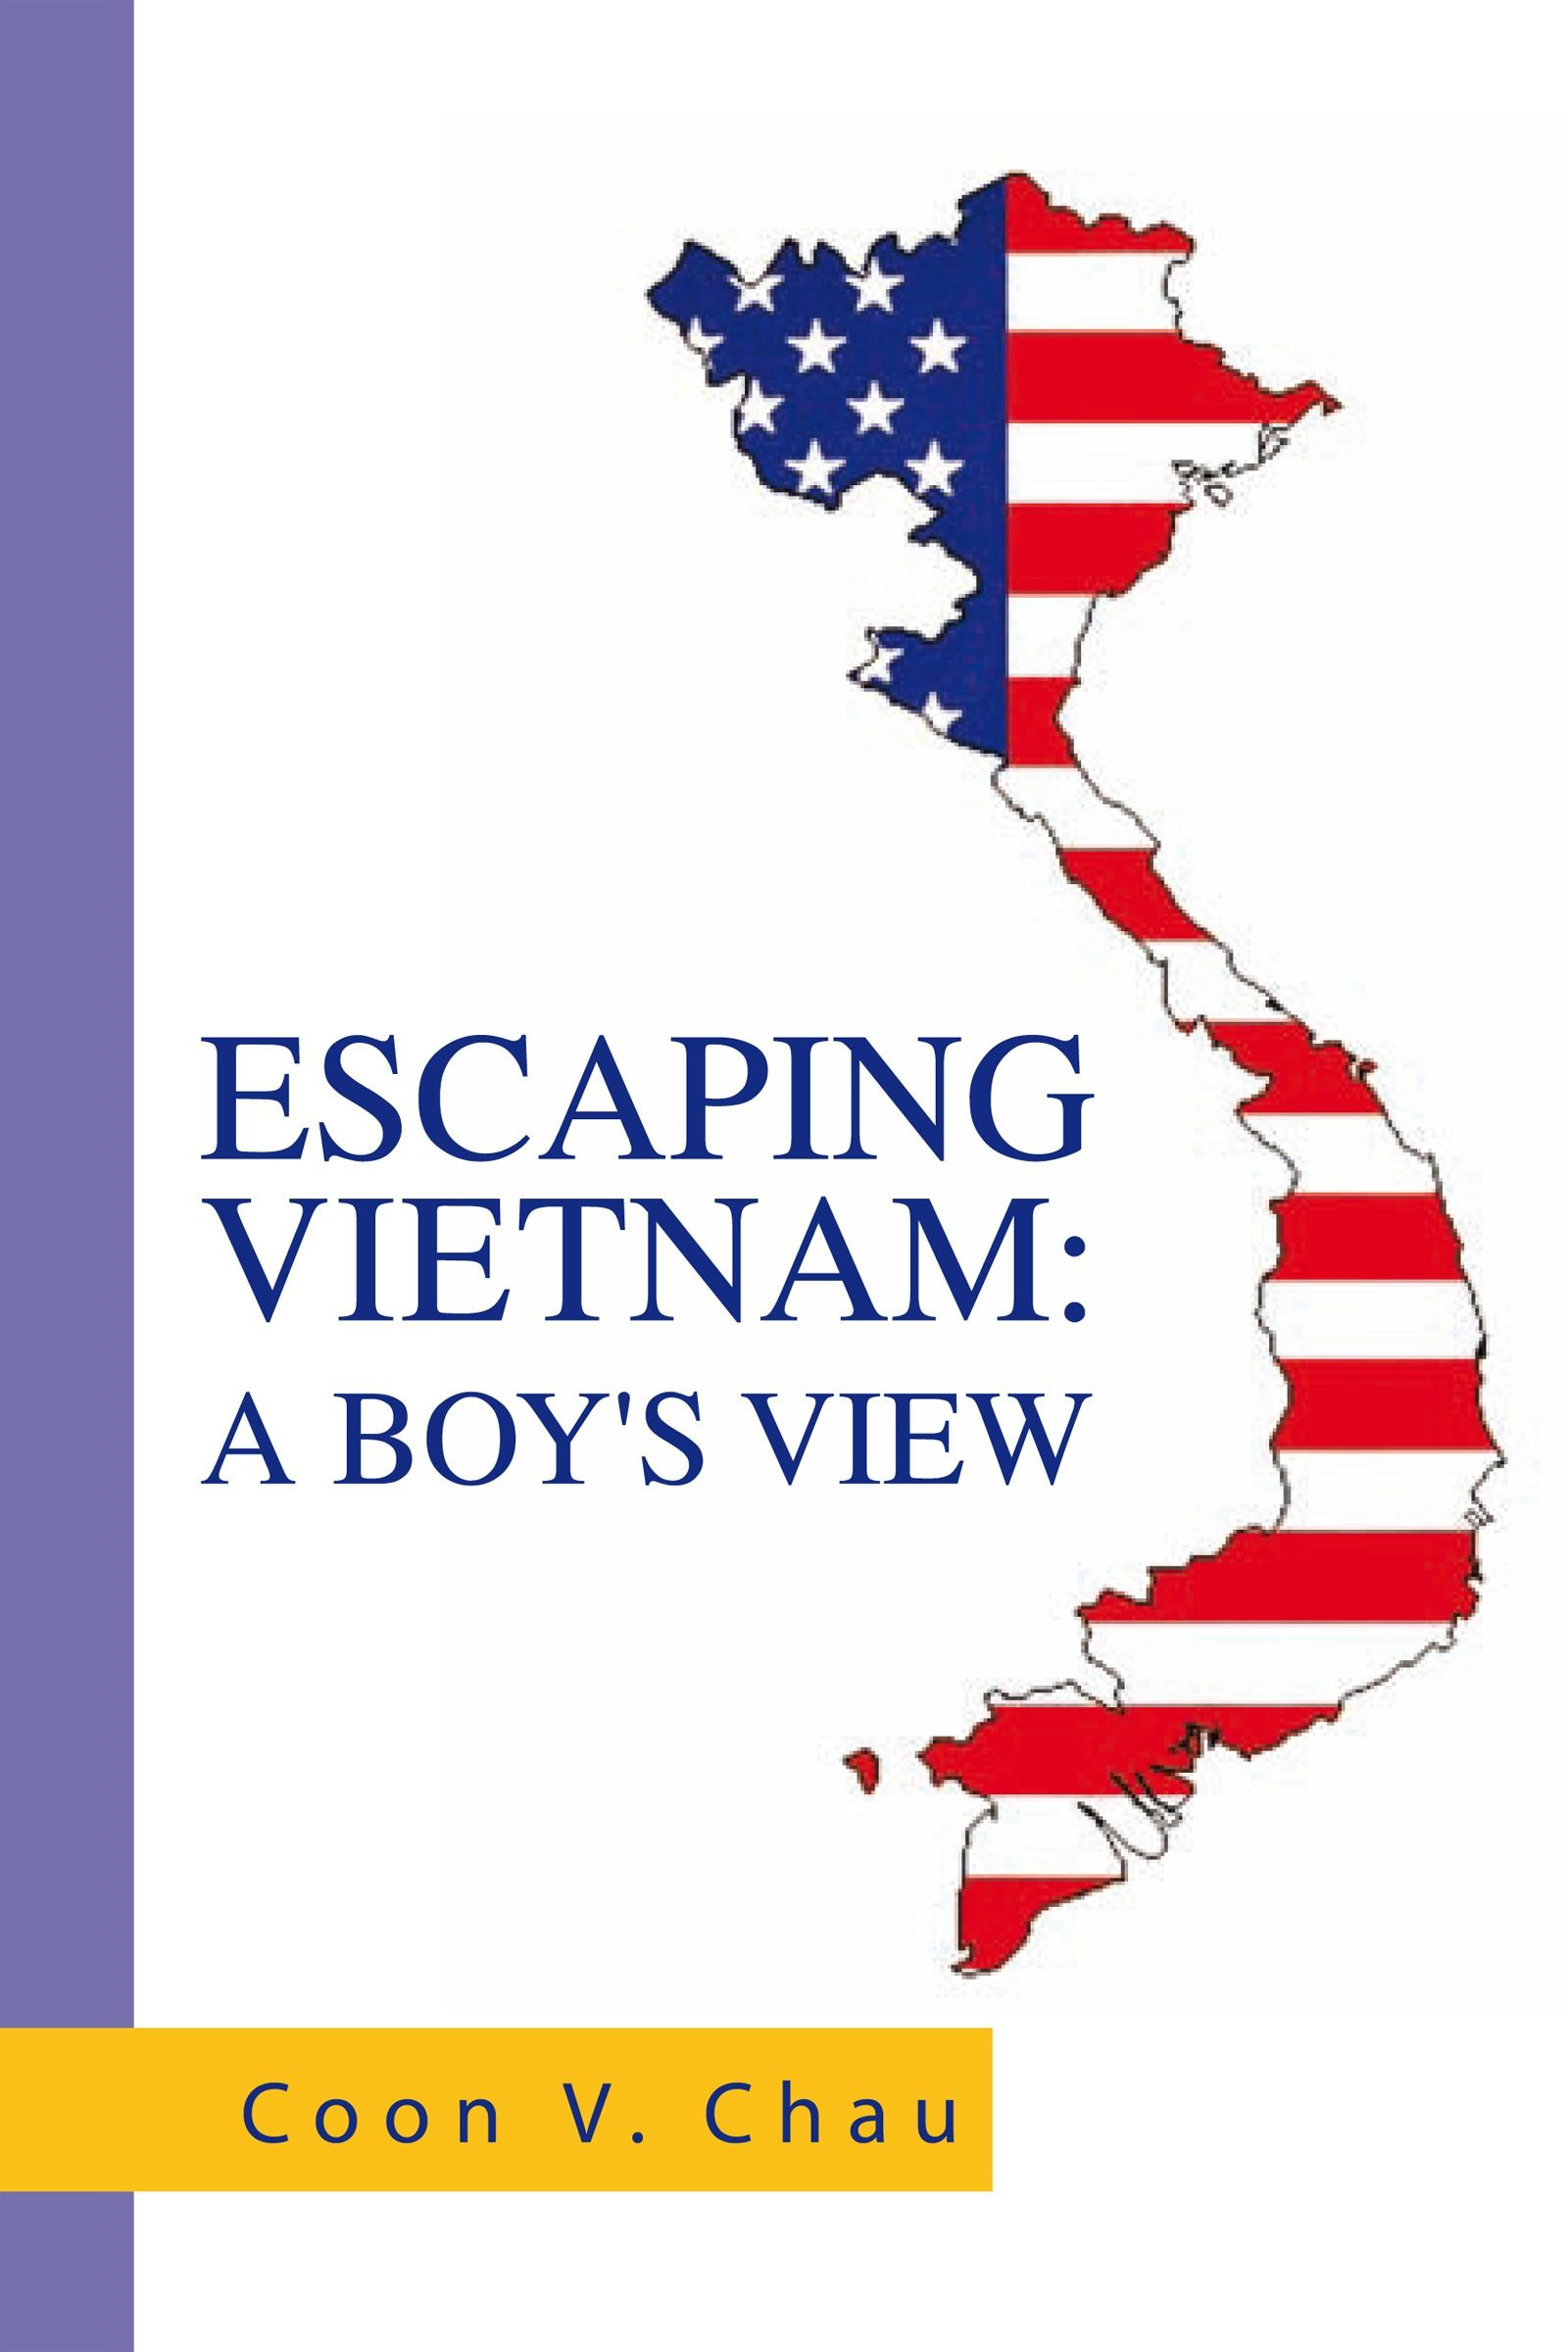 Escaping Vietnam: A Boy's View